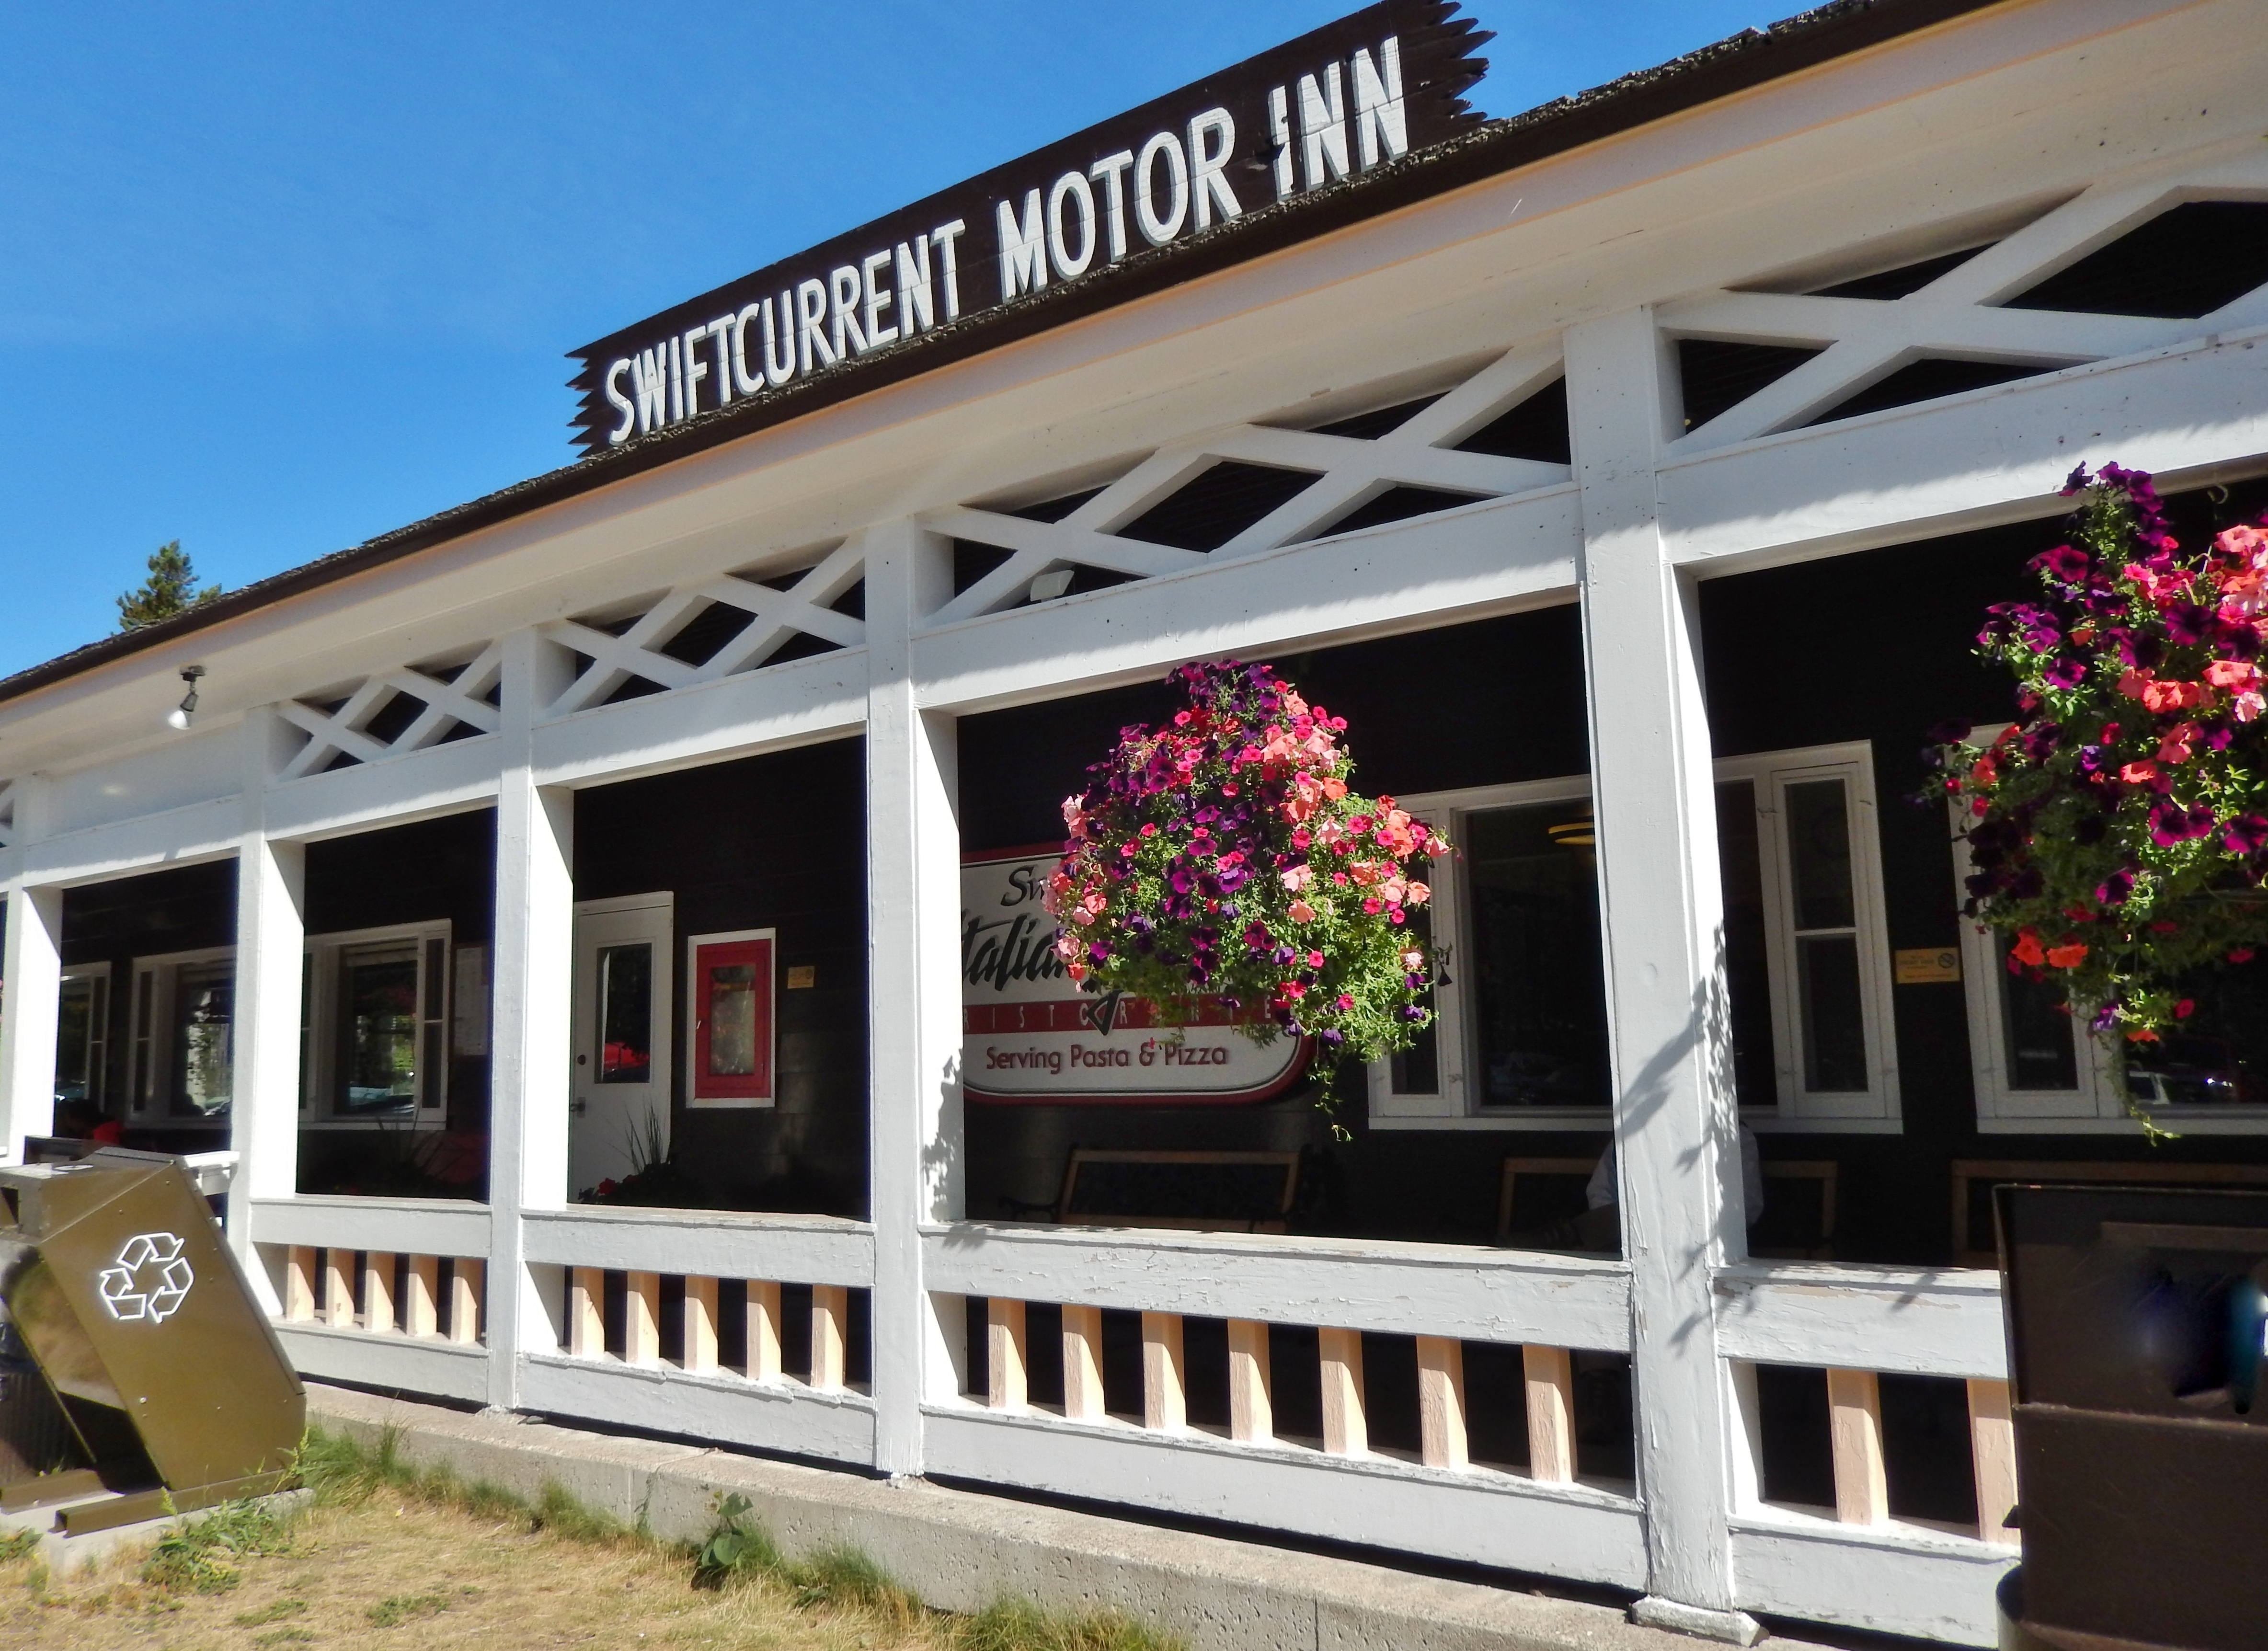 Swiftcurrent Motor Inn